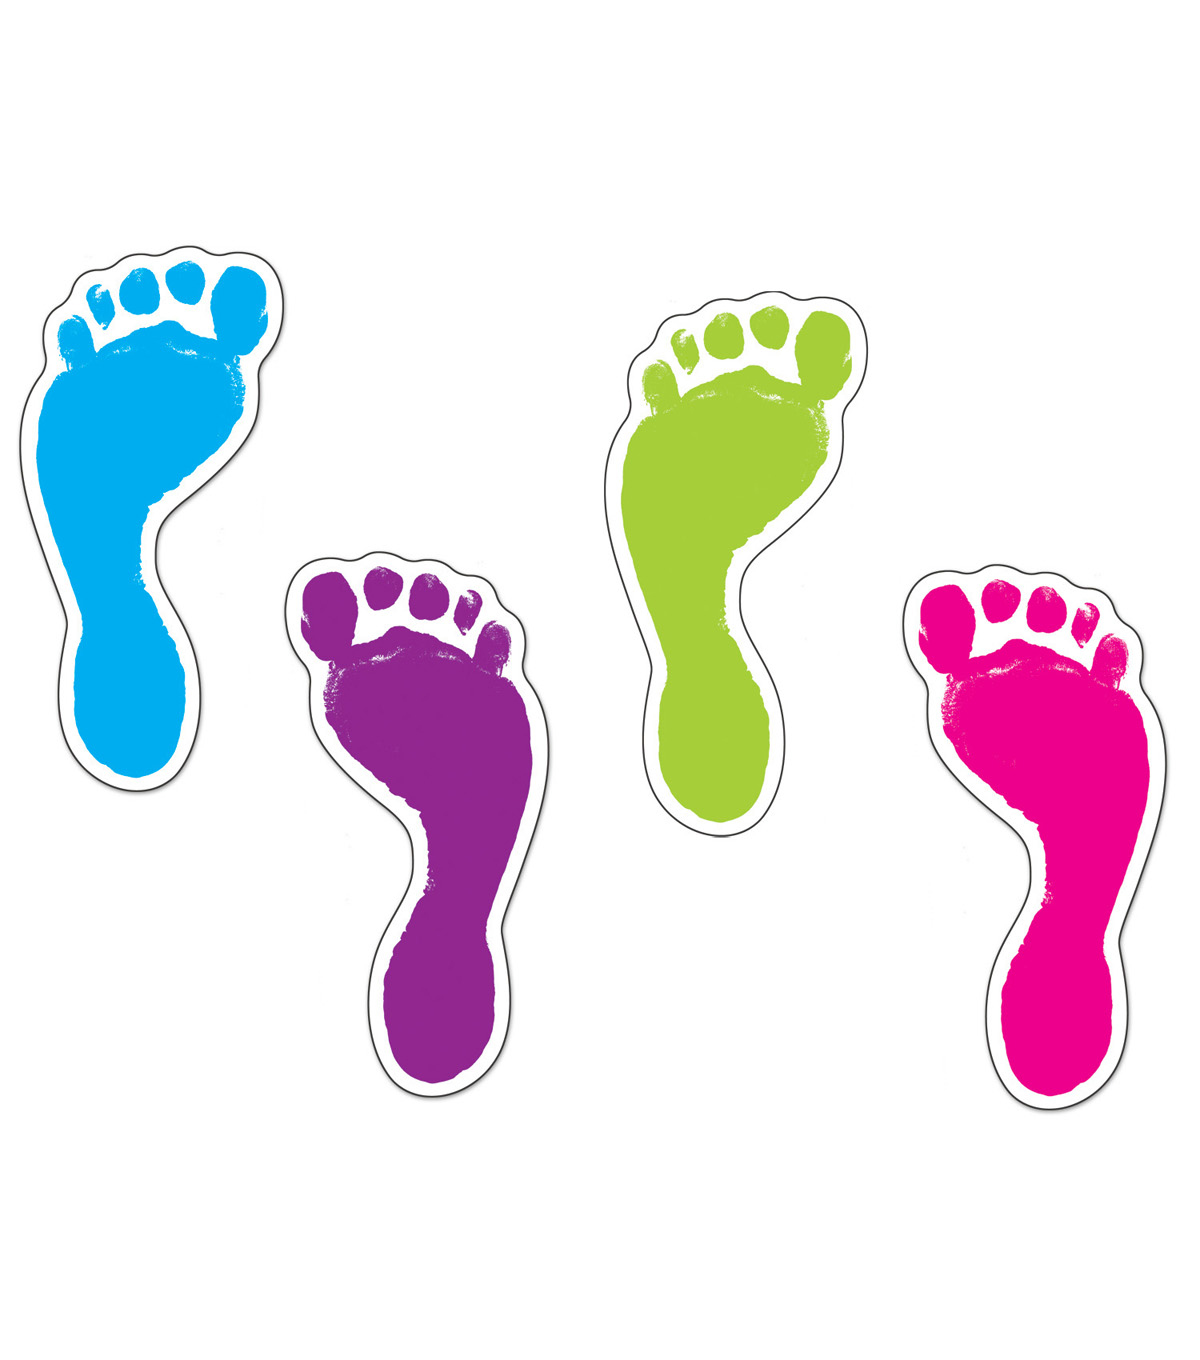 Footprints Accents 36/pk, Set Of 6 Packs